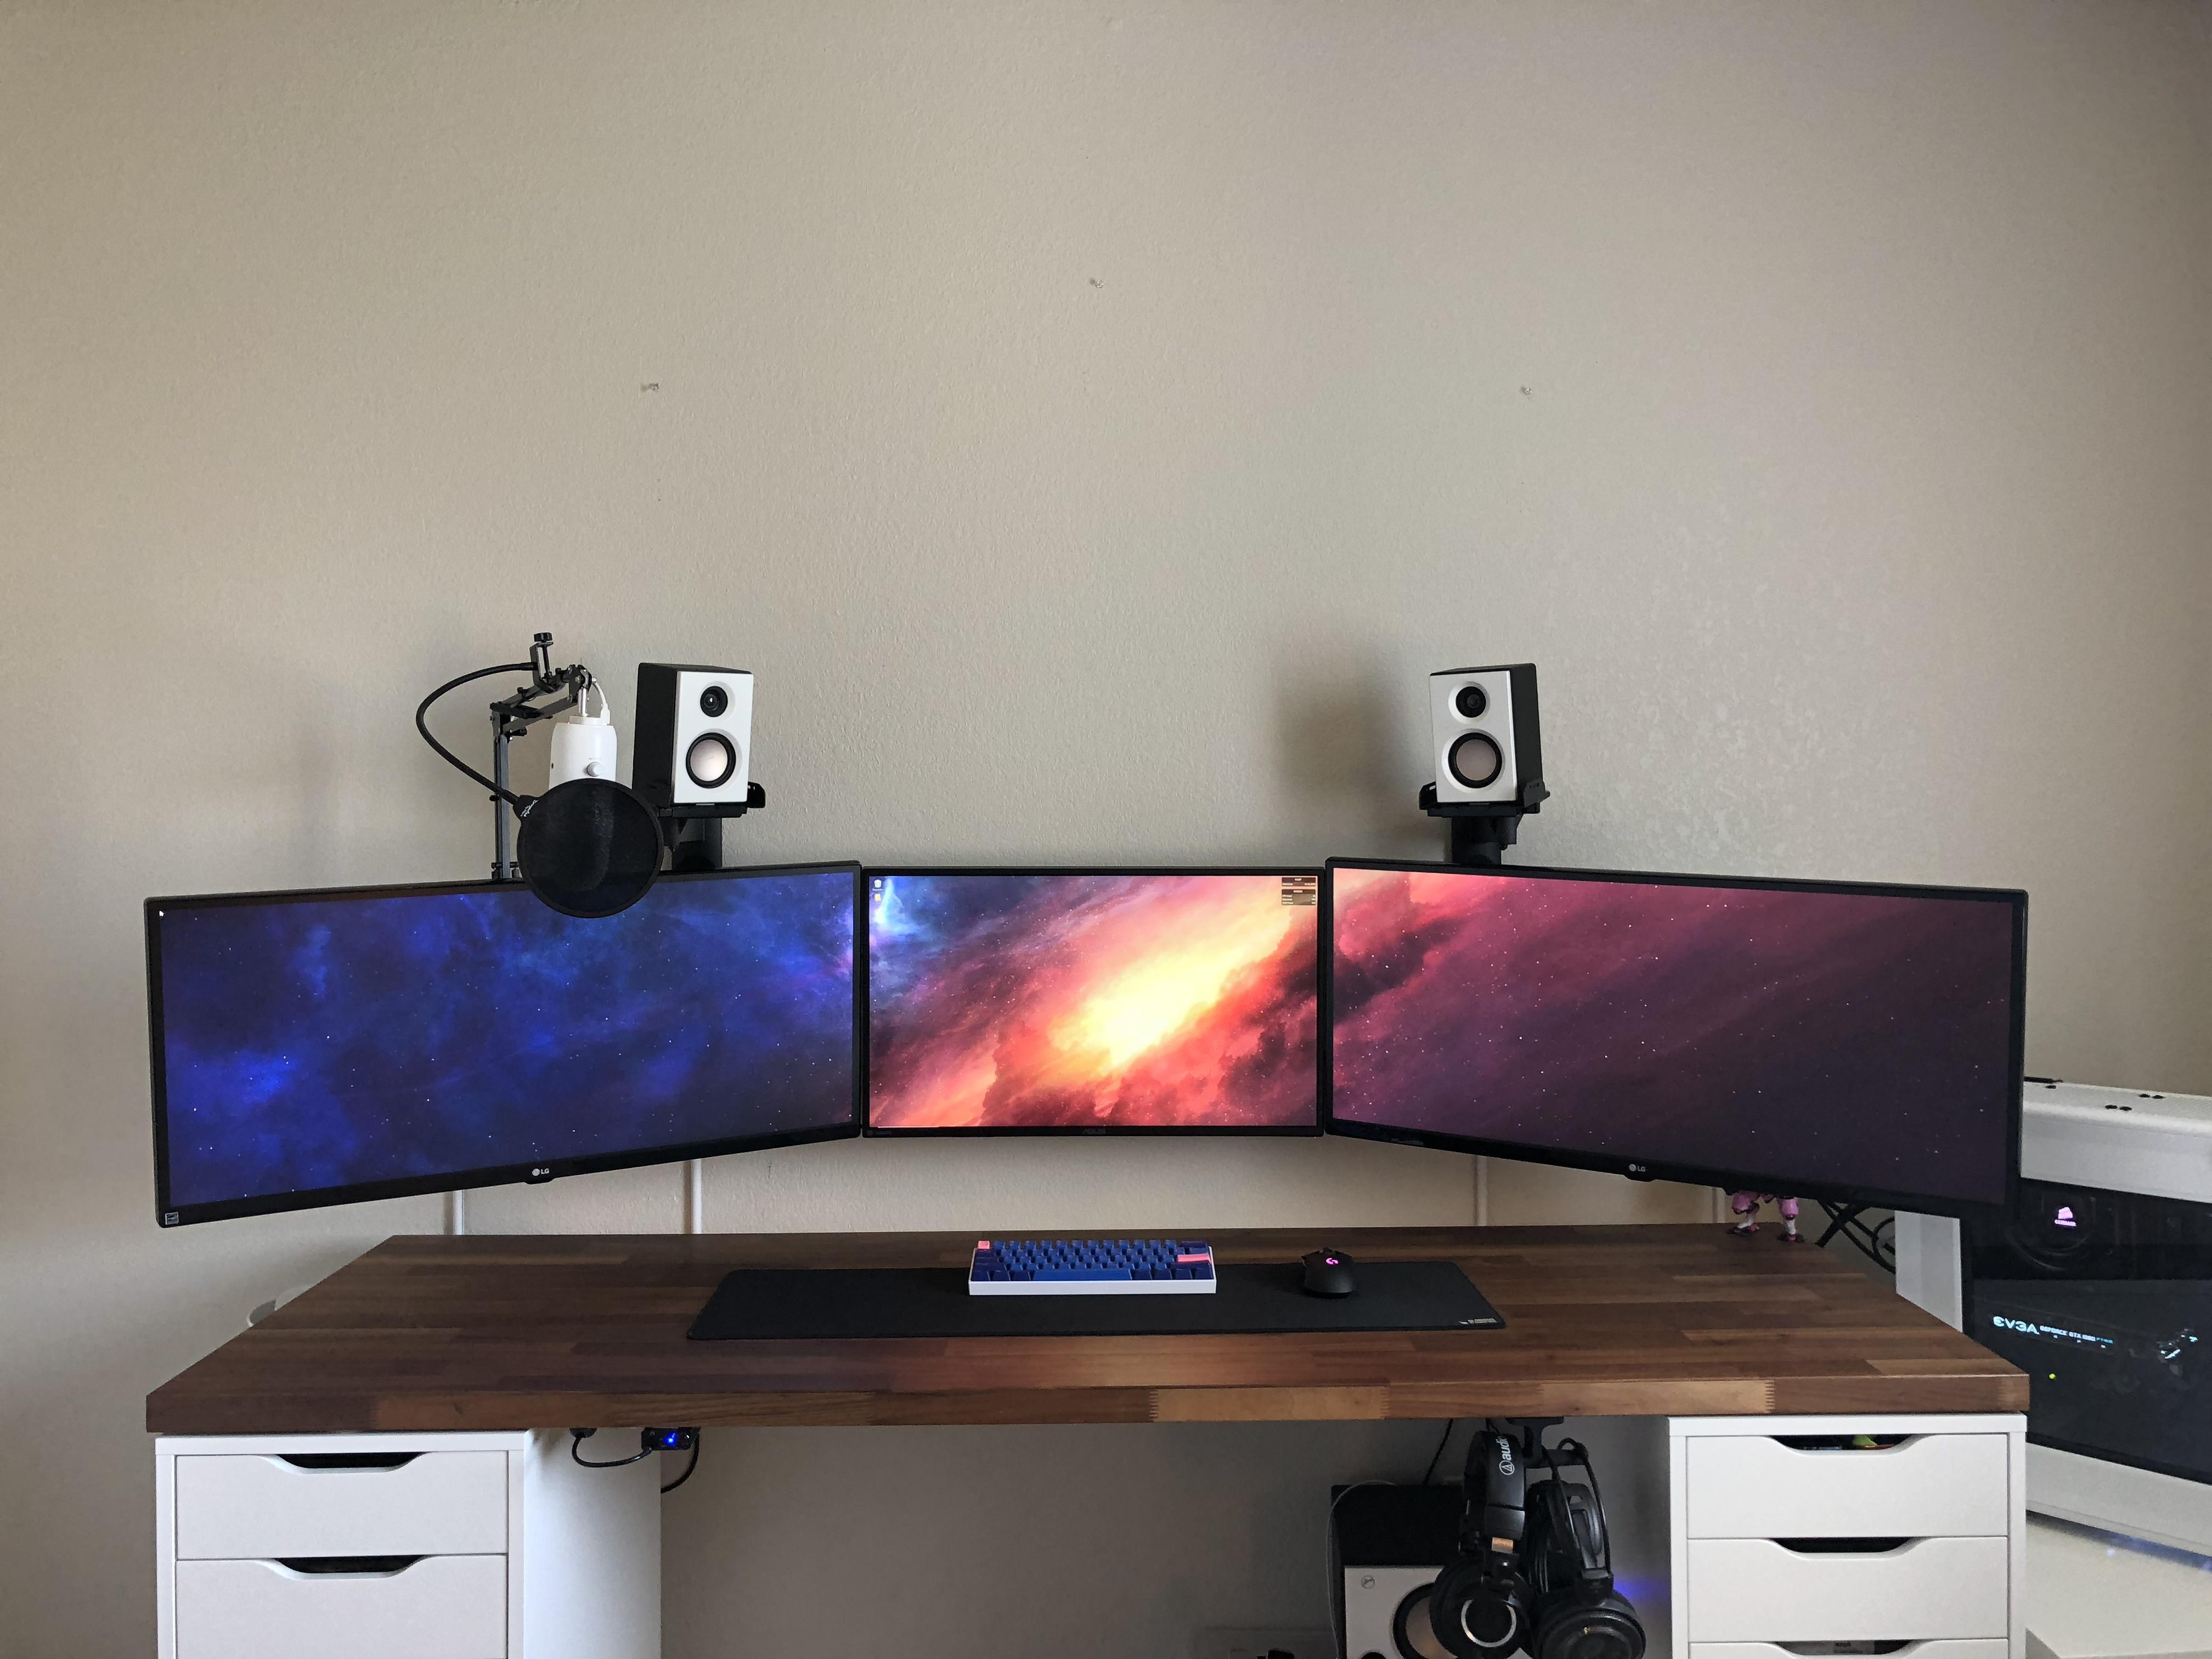 Need help decorating renovating this triple monitor setup house